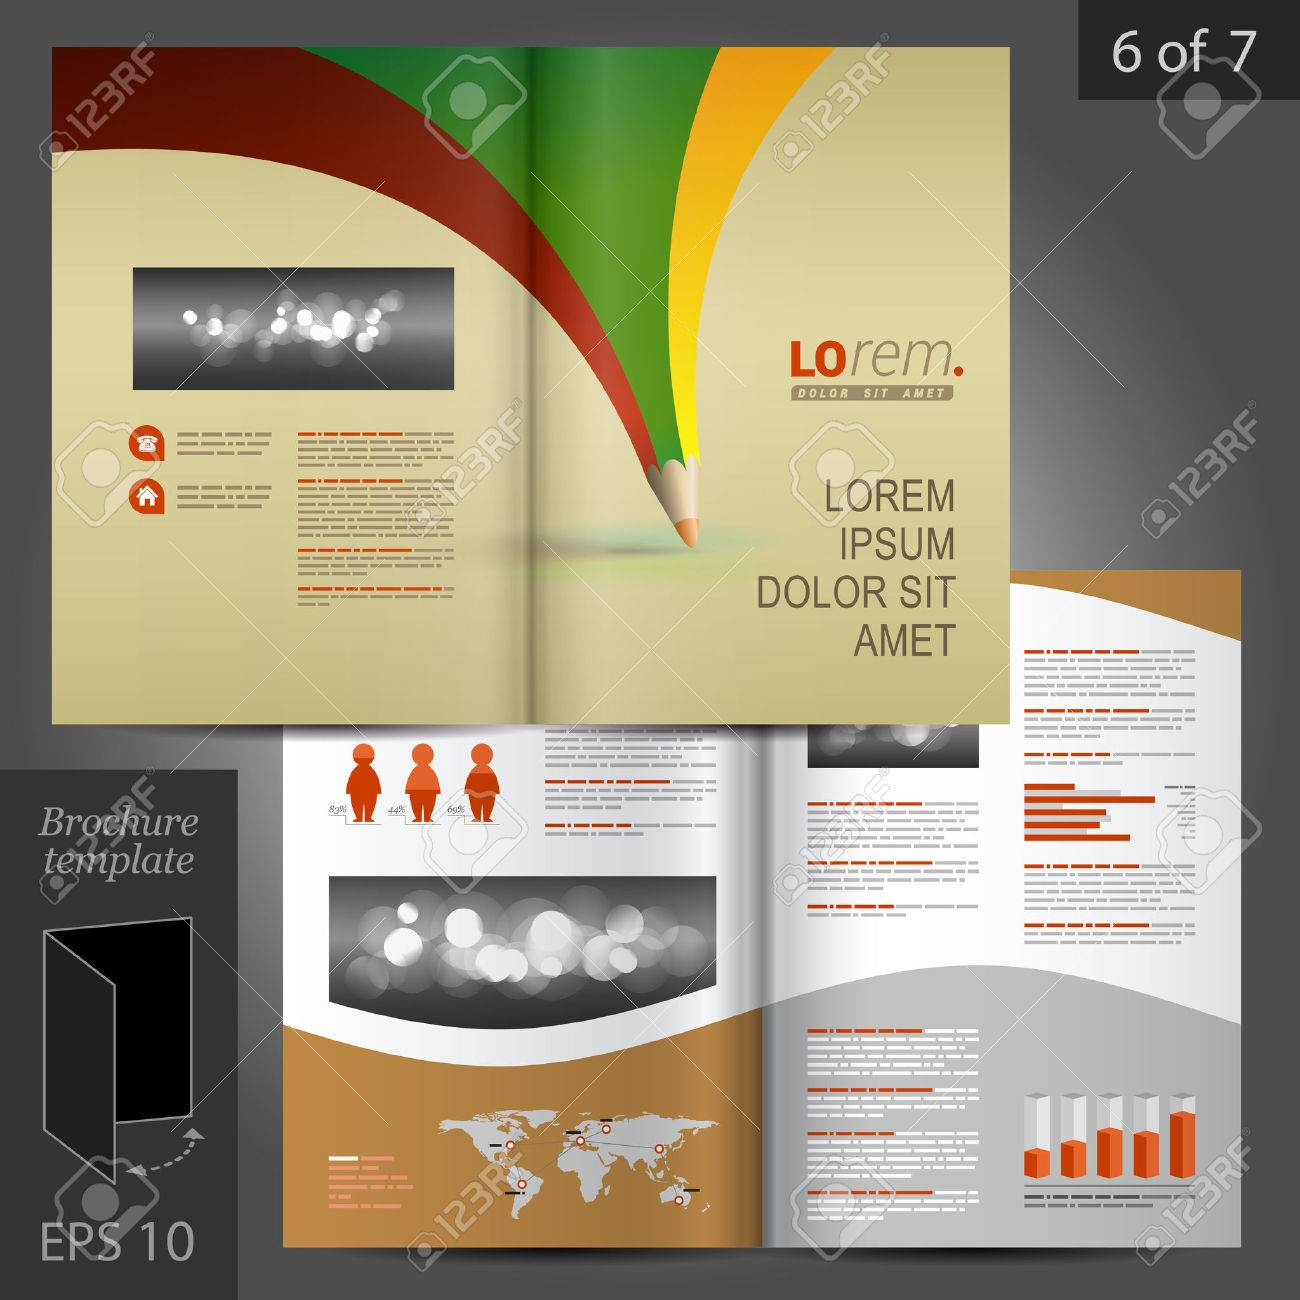 Creative Vector Brochure Template Design With Color Pencil Royalty - Brochure template ideas